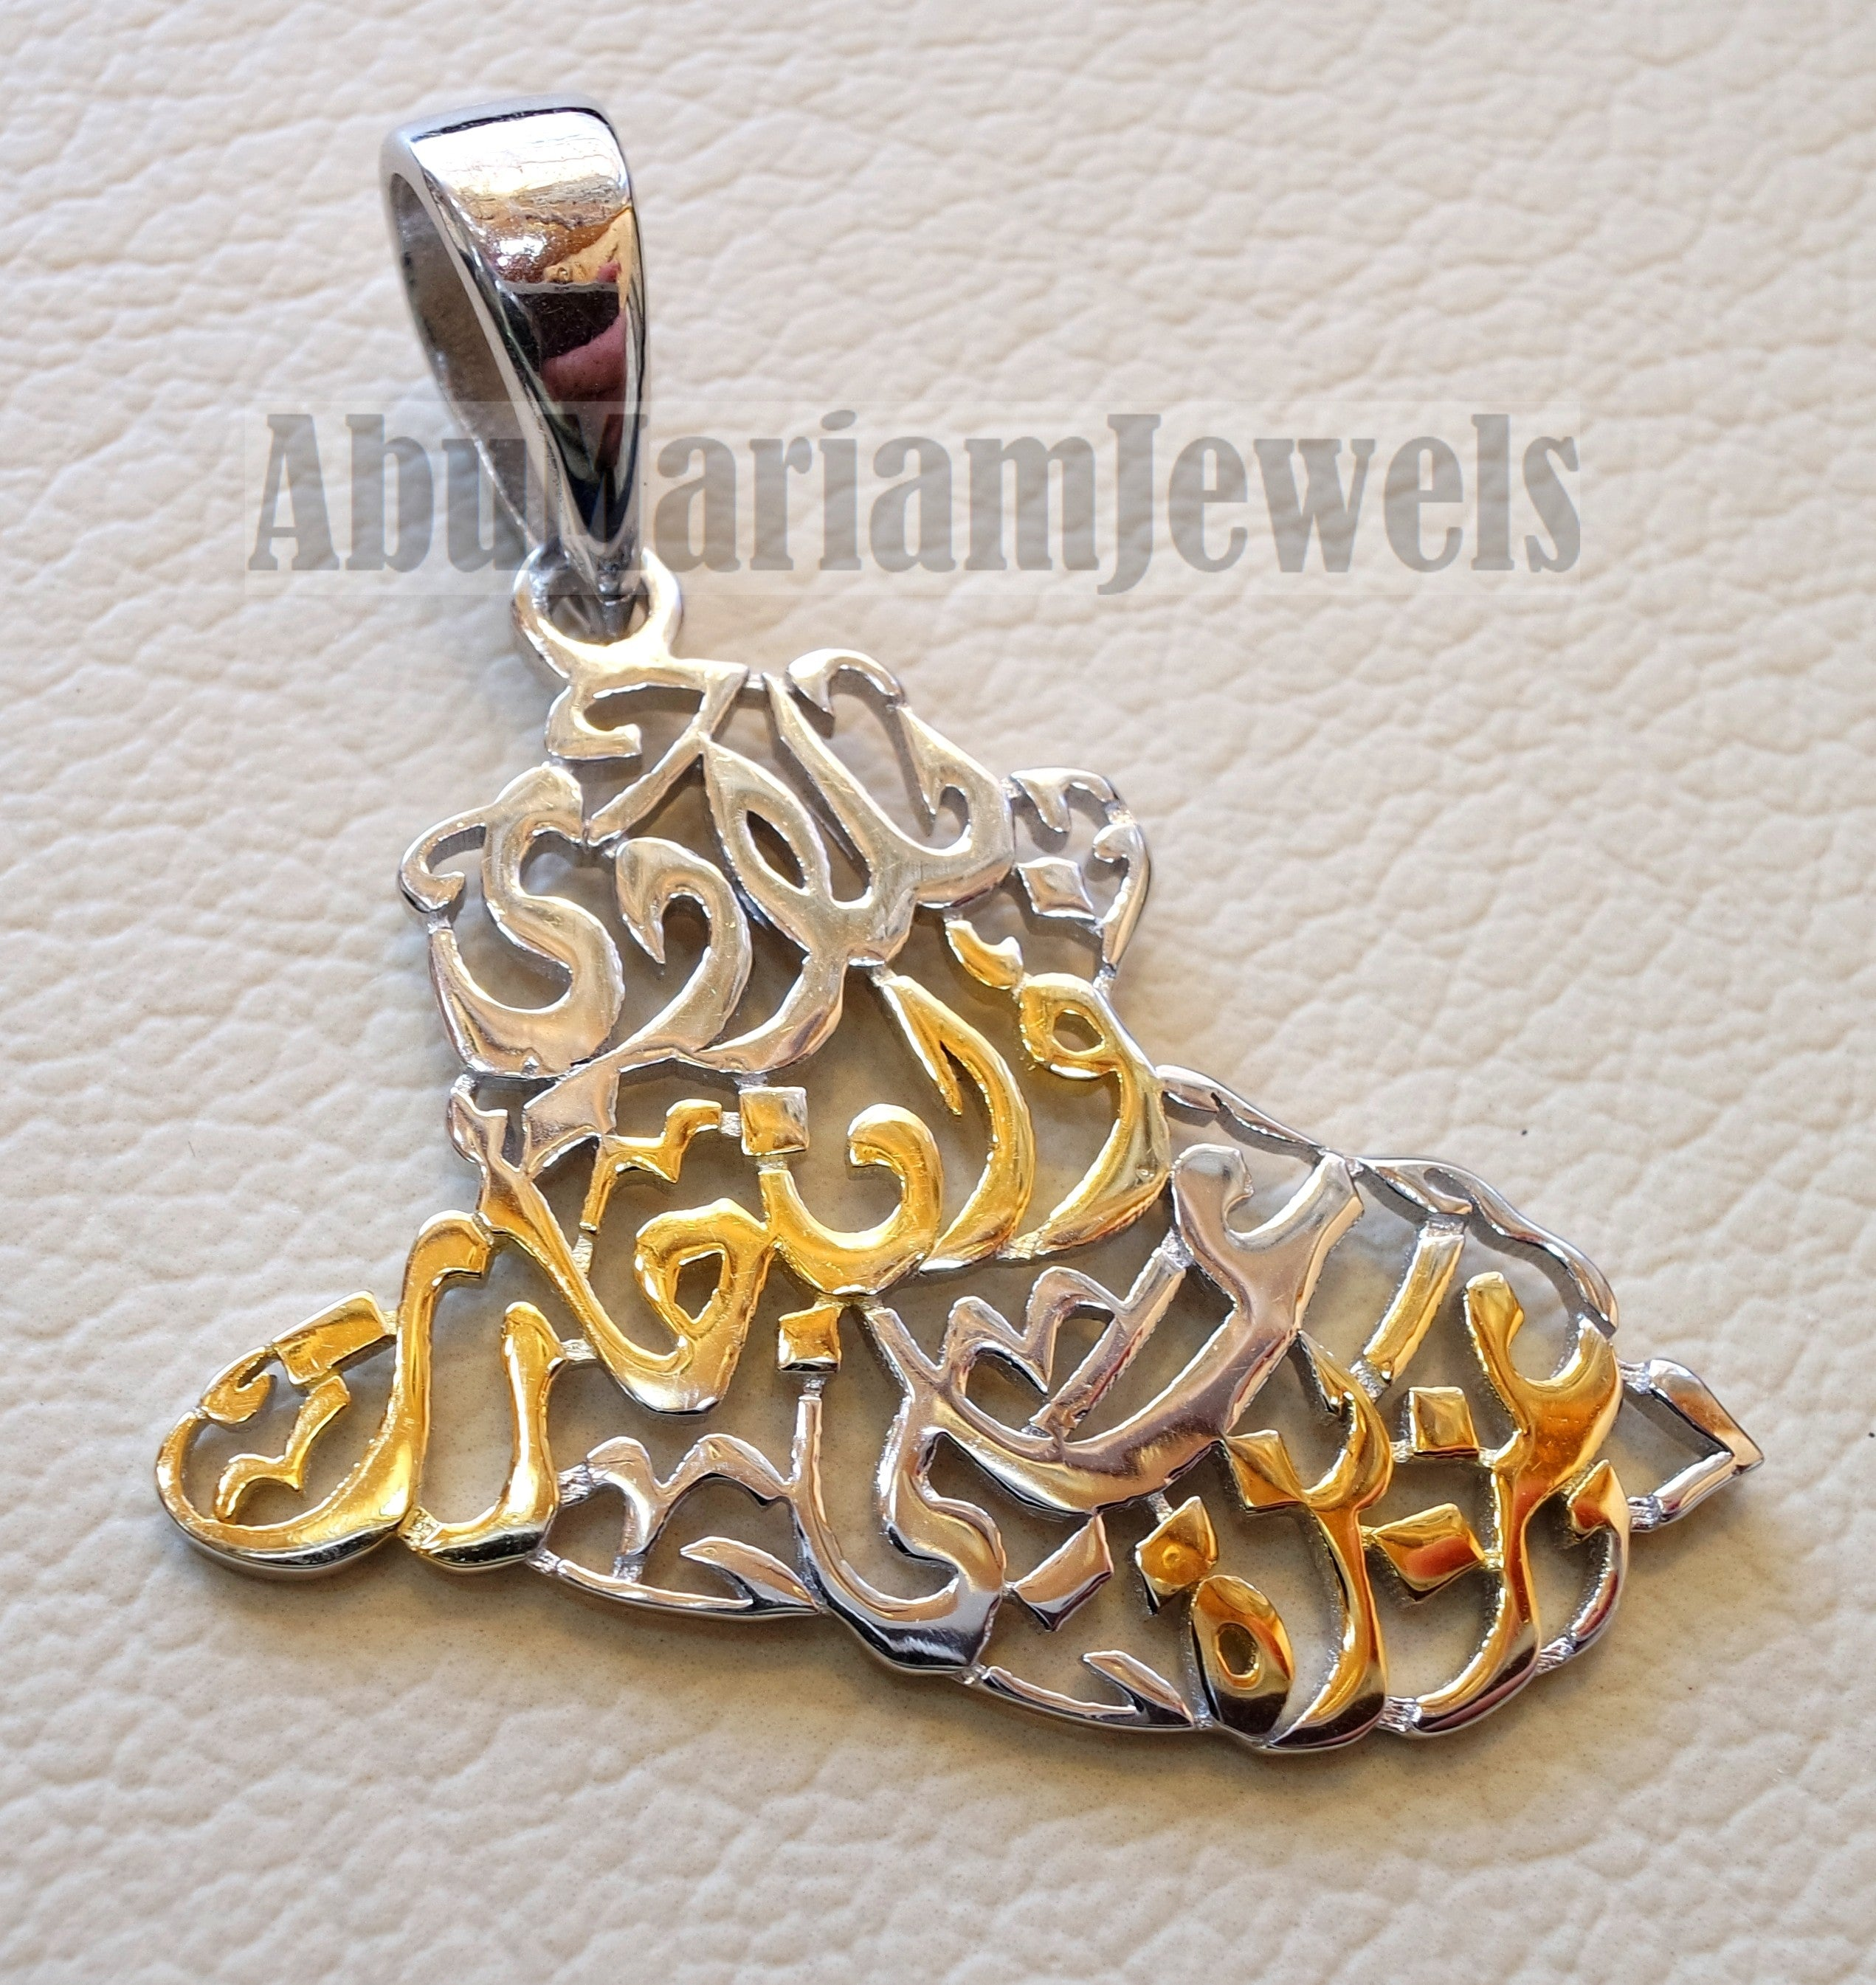 Iraq map pendant 2 tone with famous poem verse sterling silver 925 with gold plating jewelry arabic خارطة العراق